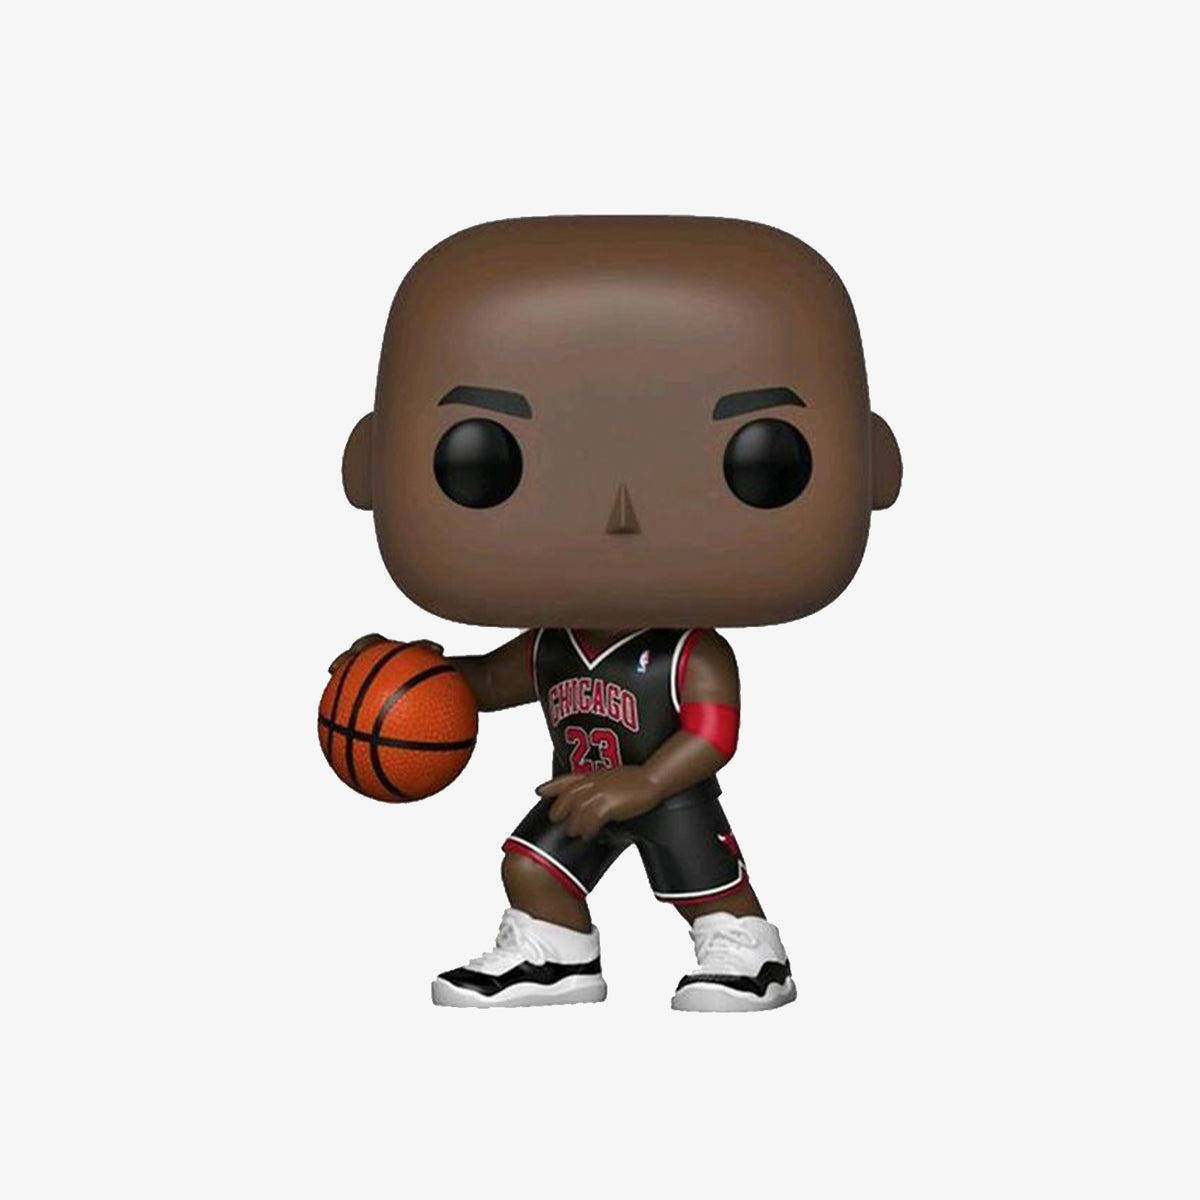 Michael Jordan 95-96 Chicago Bulls NBA Pop Figure - Black